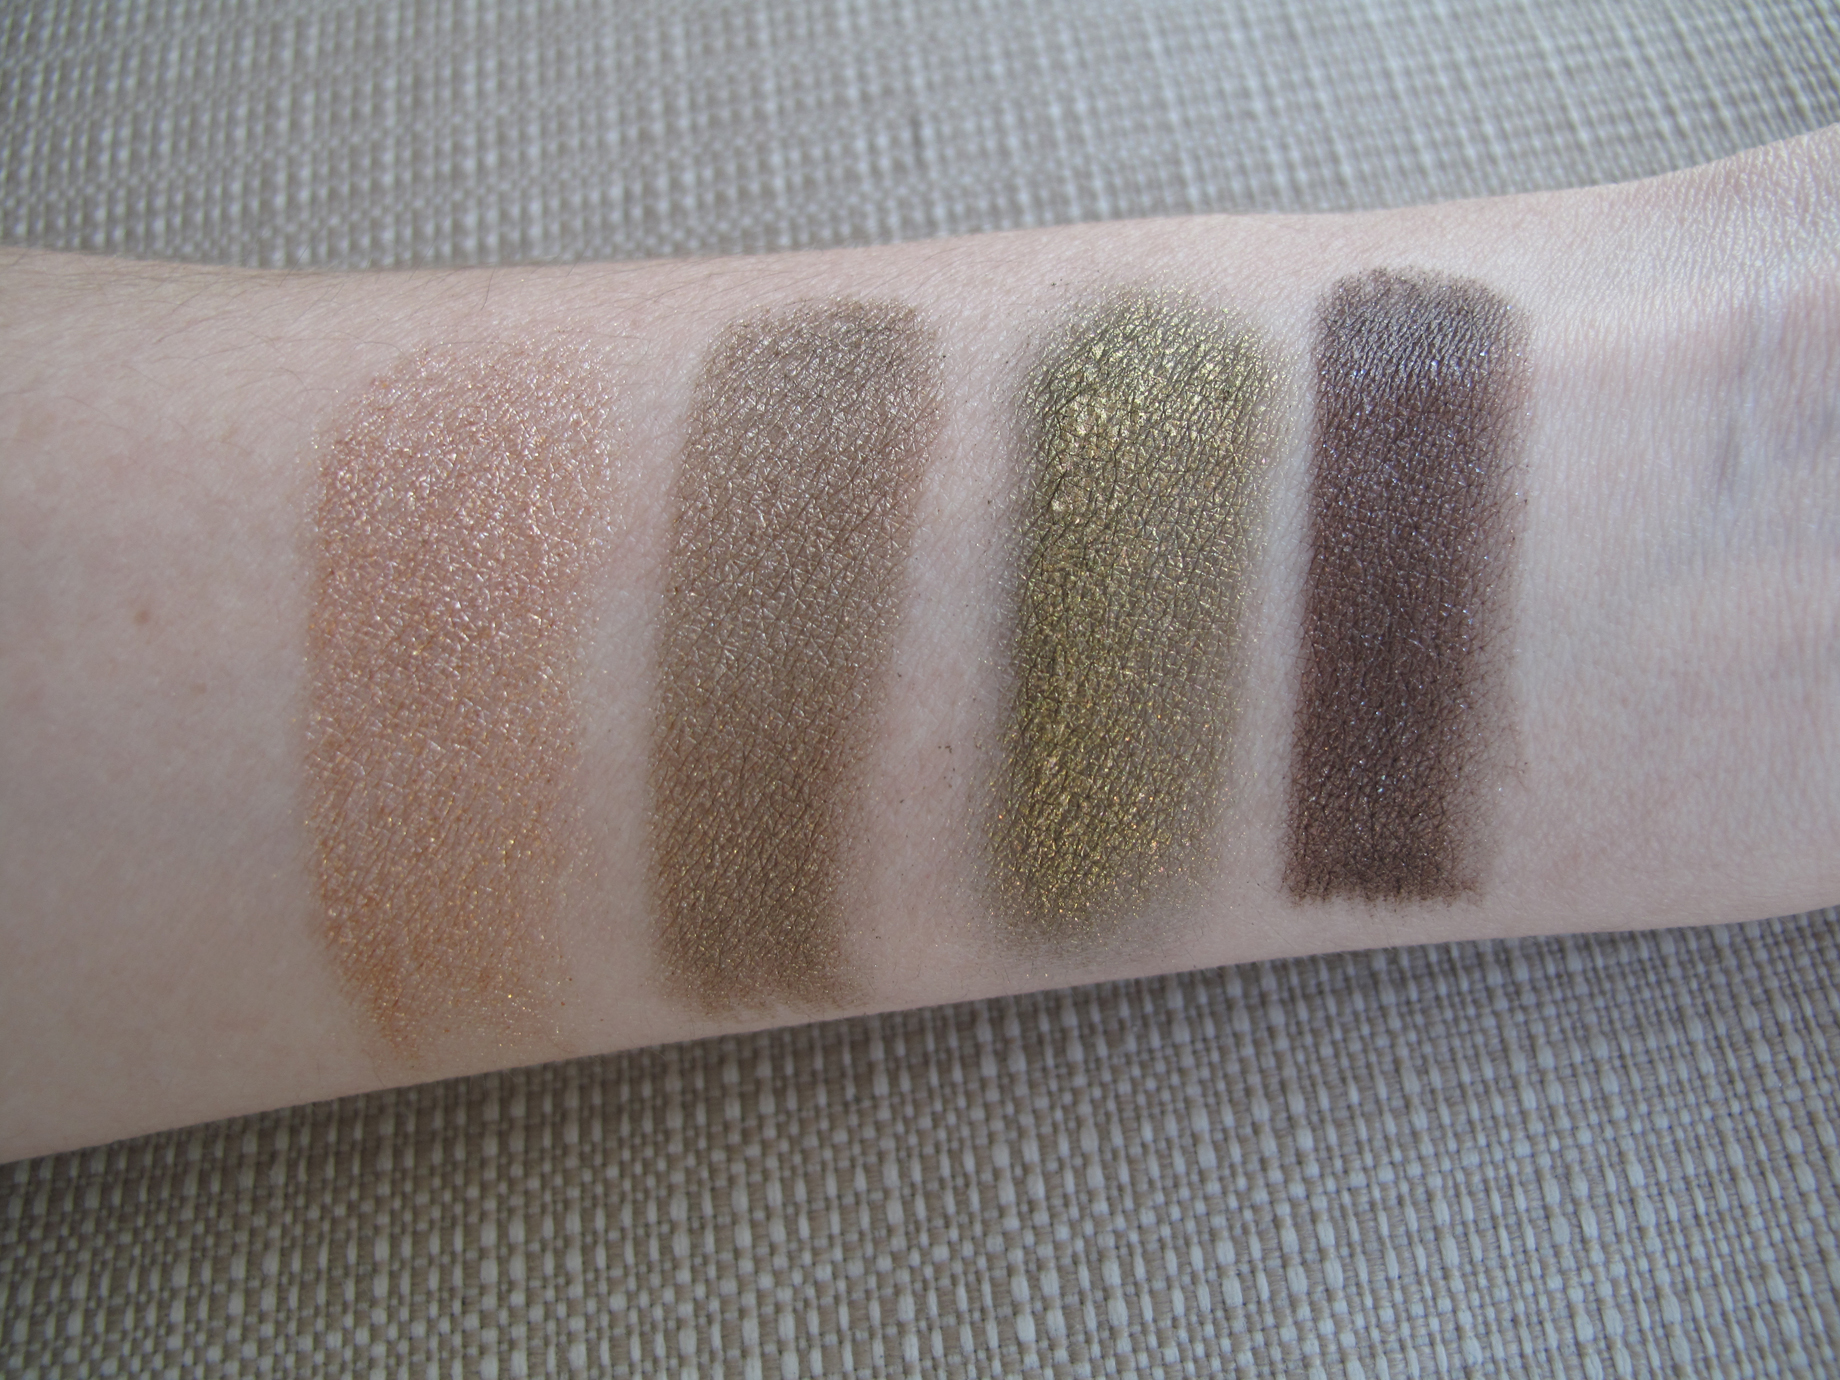 Mac - A Harvest Of Greens - swatch molhada